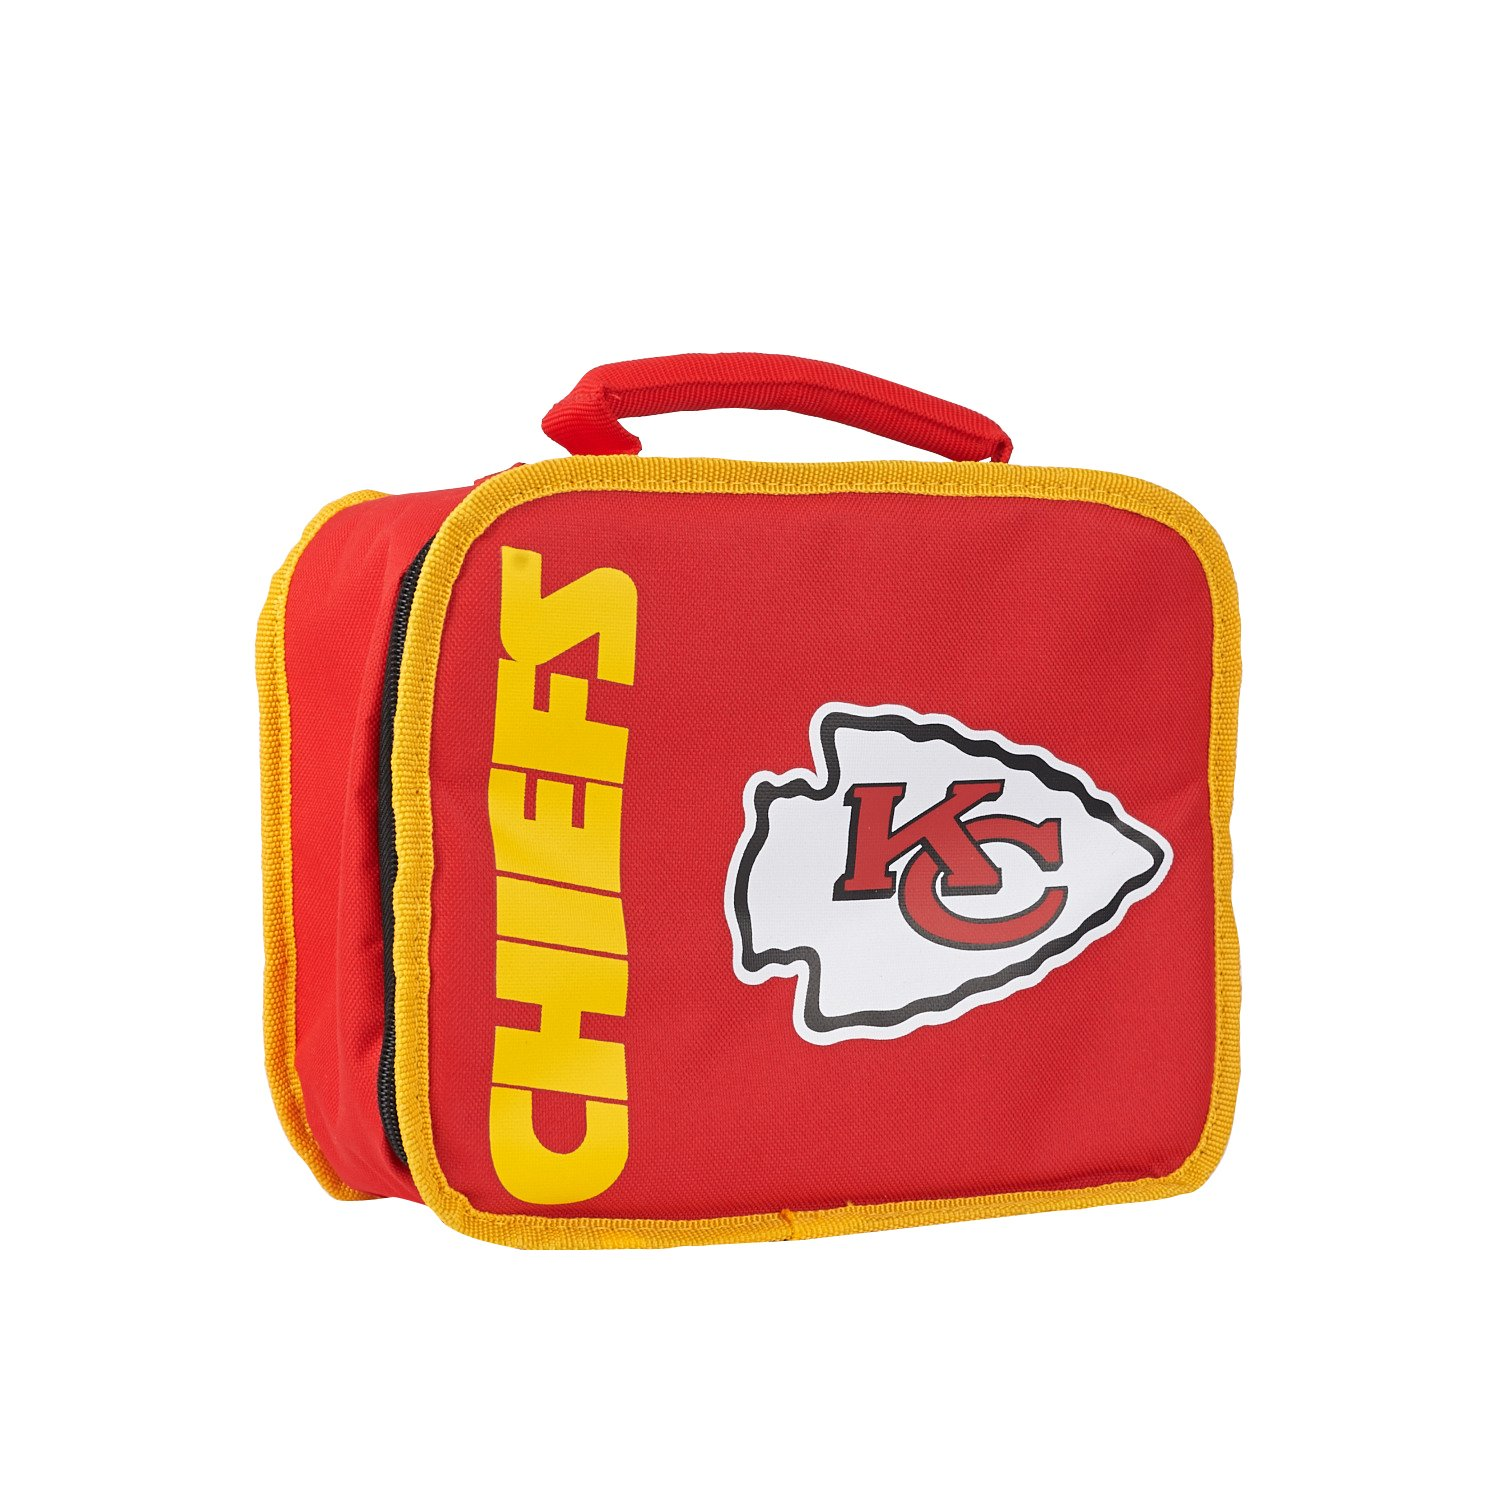 Officially Licensed NFL Kansas City Chiefs